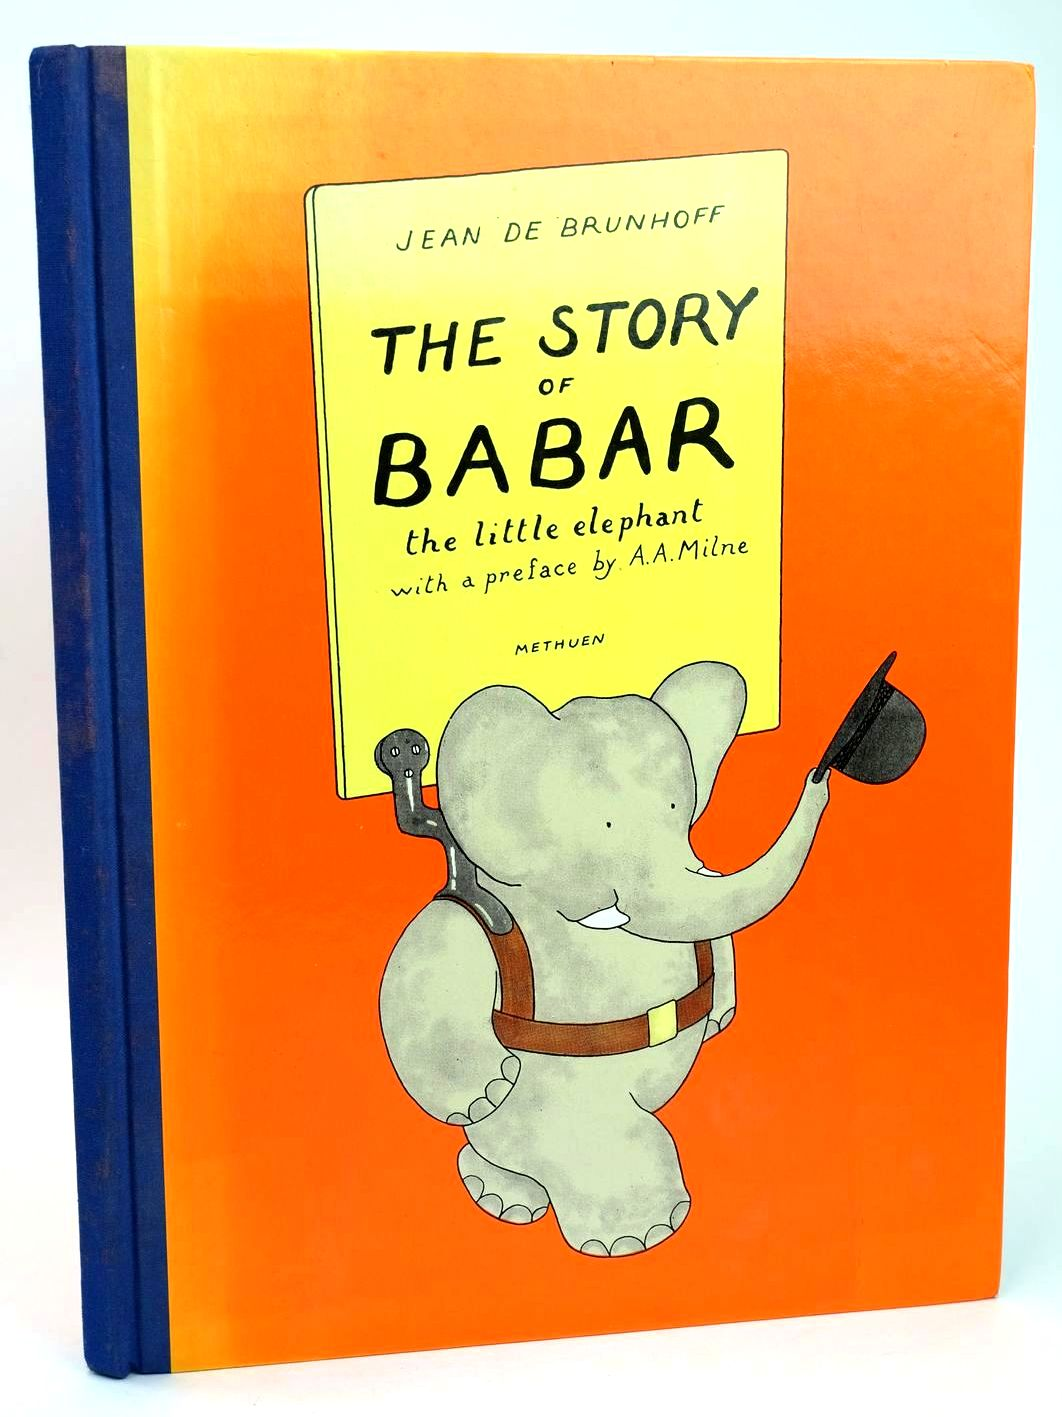 Photo of THE STORY OF BABAR THE LITTLE ELEPHANT written by De Brunhoff, Jean Milne, A.A. illustrated by De Brunhoff, Jean published by Methuen Children's Books (STOCK CODE: 1318542)  for sale by Stella & Rose's Books